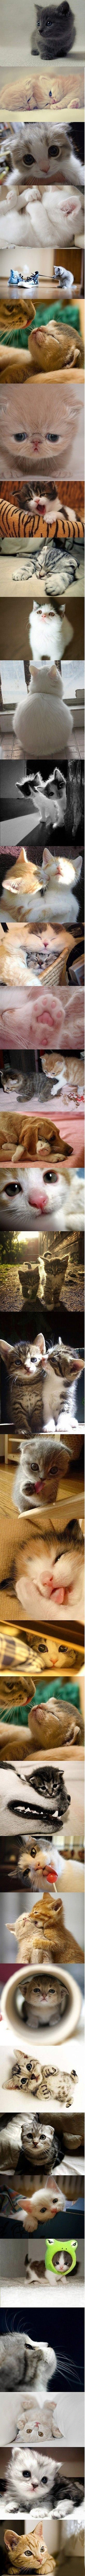 Adorable cat pics cute pinterest kitty cat and animal